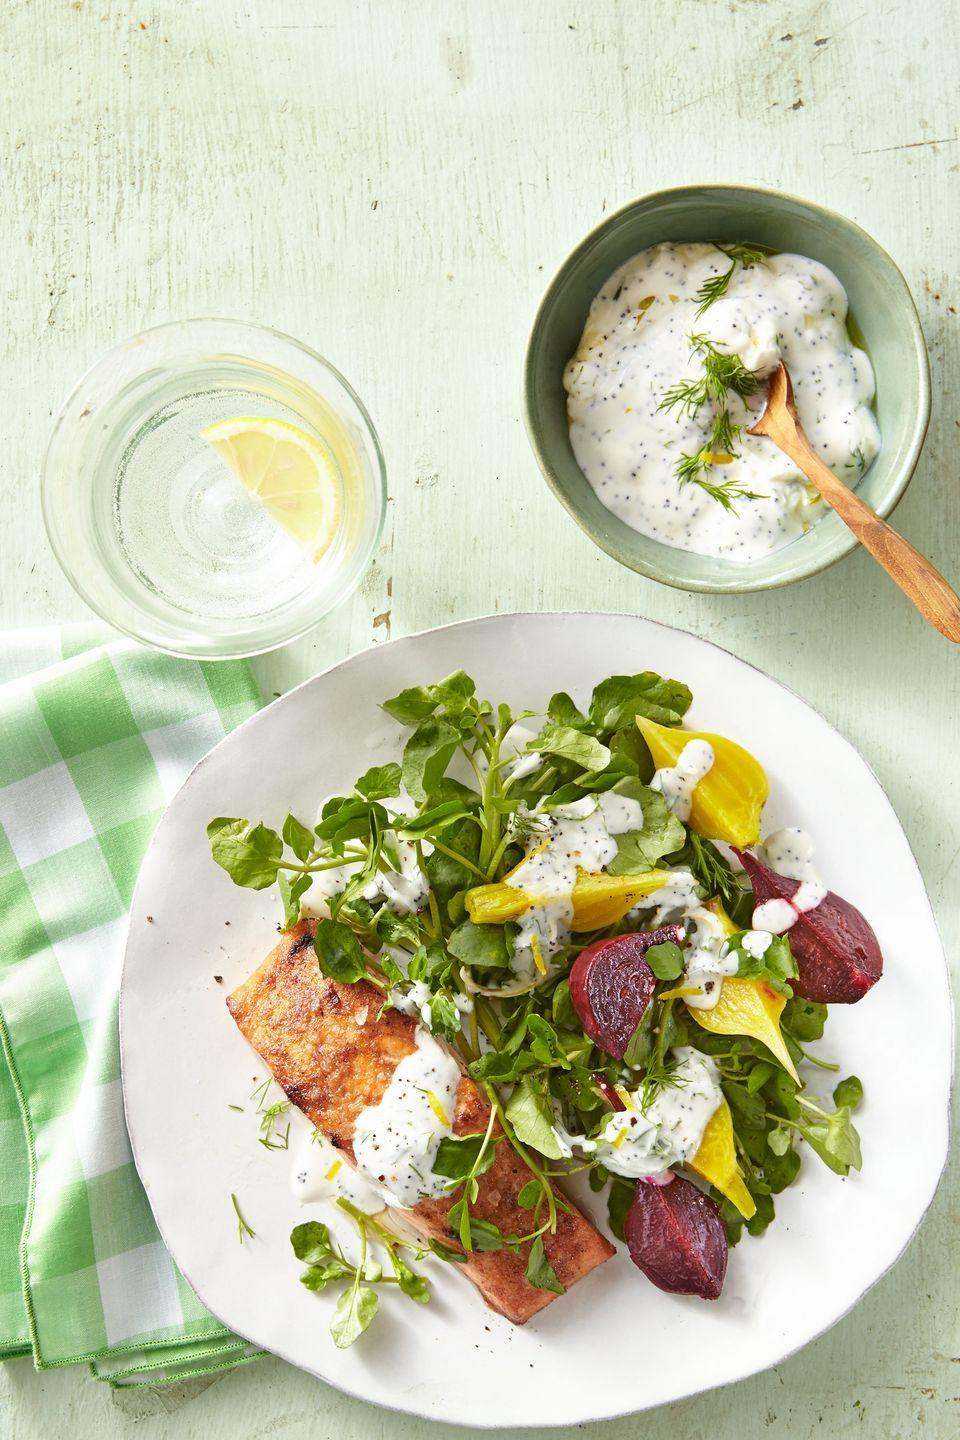 "<p>You can't <em>beet</em> this dish. (Sorry, we couldn't resist.)</p><p><strong><a href=""https://www.countryliving.com/food-drinks/recipes/a37756/salmon-and-beets-with-yogurt-sauce-over-watercress-recipe/"" rel=""nofollow noopener"" target=""_blank"" data-ylk=""slk:Get the recipe"" class=""link rapid-noclick-resp"">Get the recipe</a>.</strong></p>"